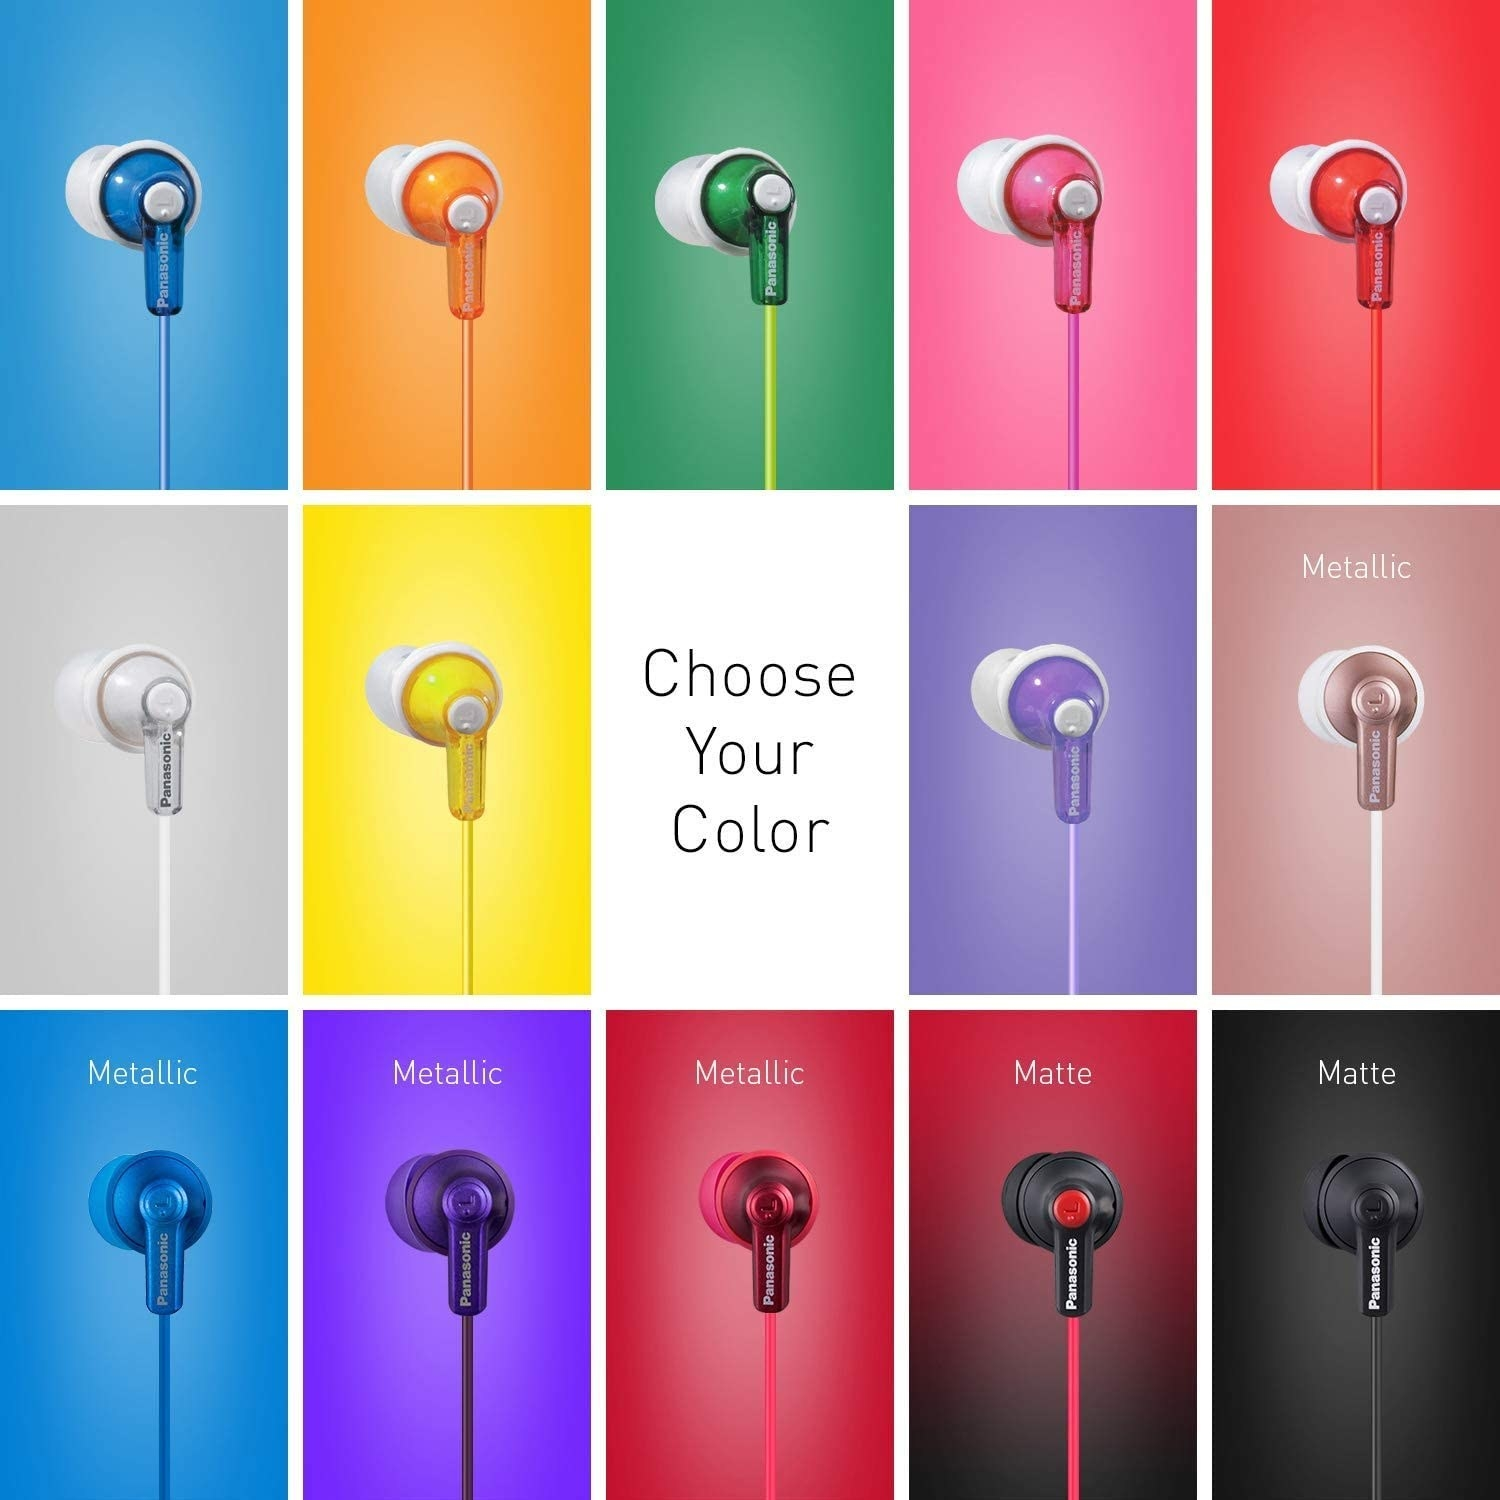 the headphones shown in many colors